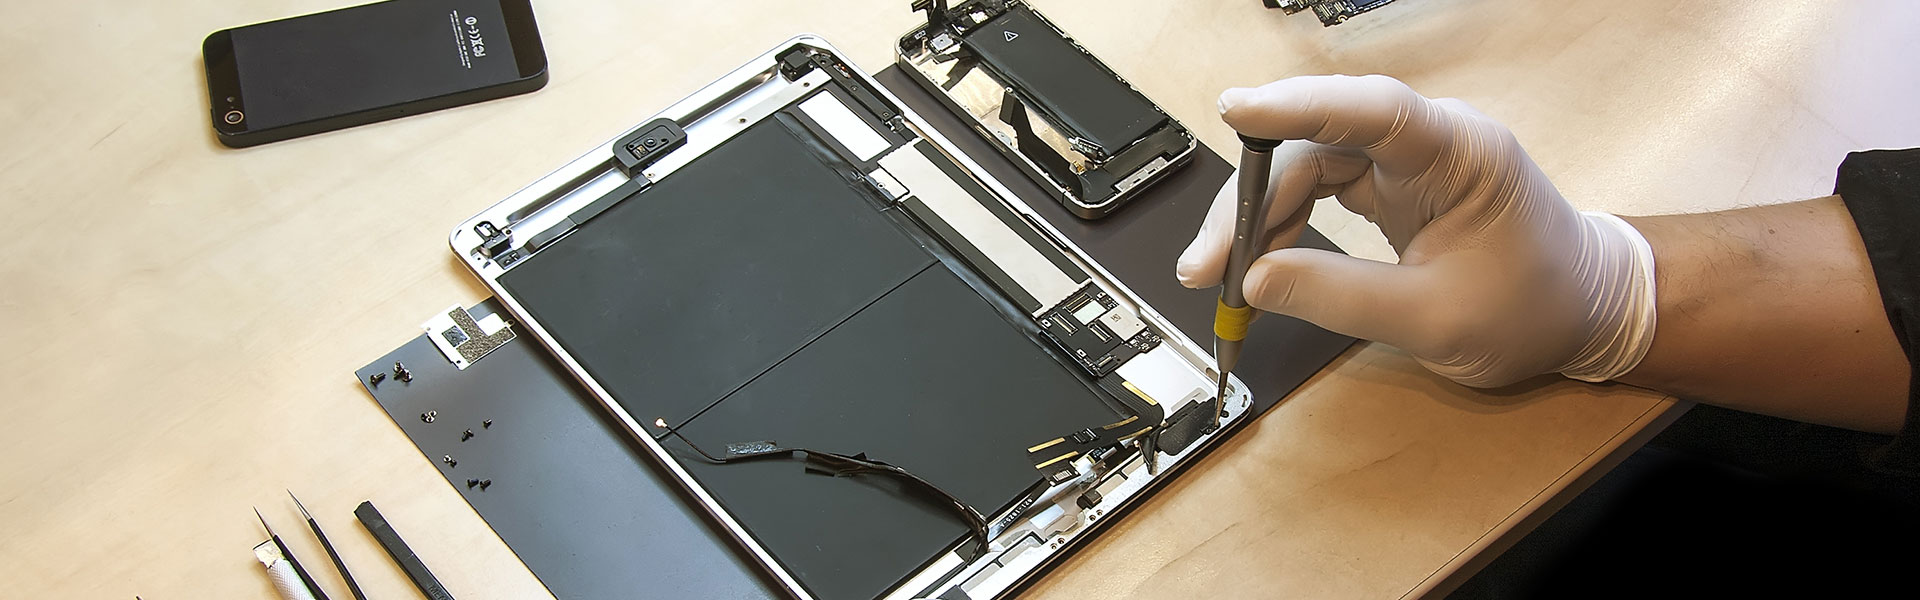 Inspecting Ipad hardware parts